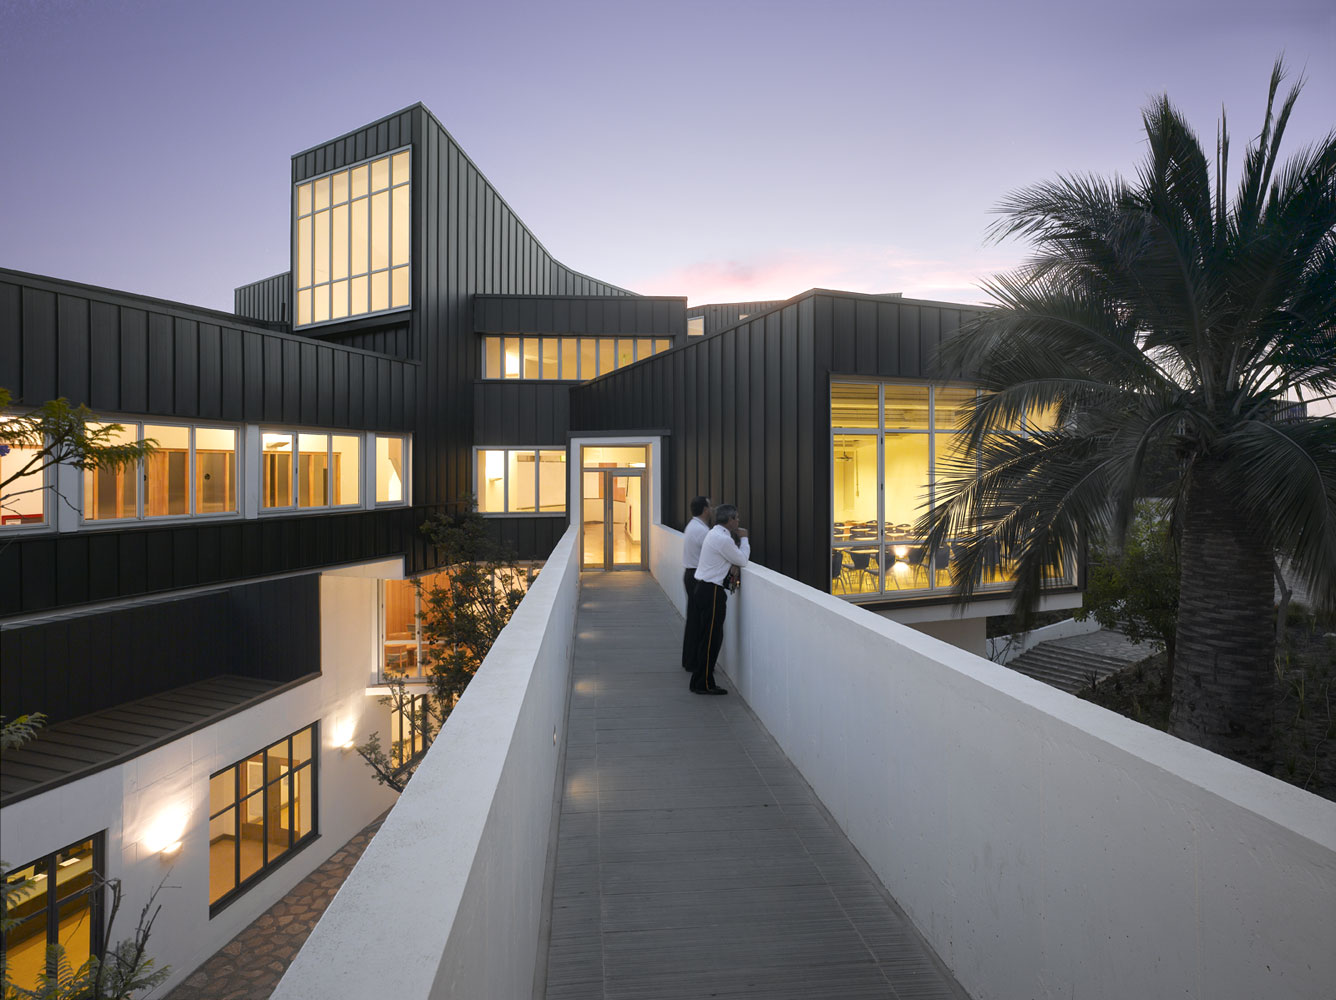 Roland halbe architectural photography for Arquitectura universidades